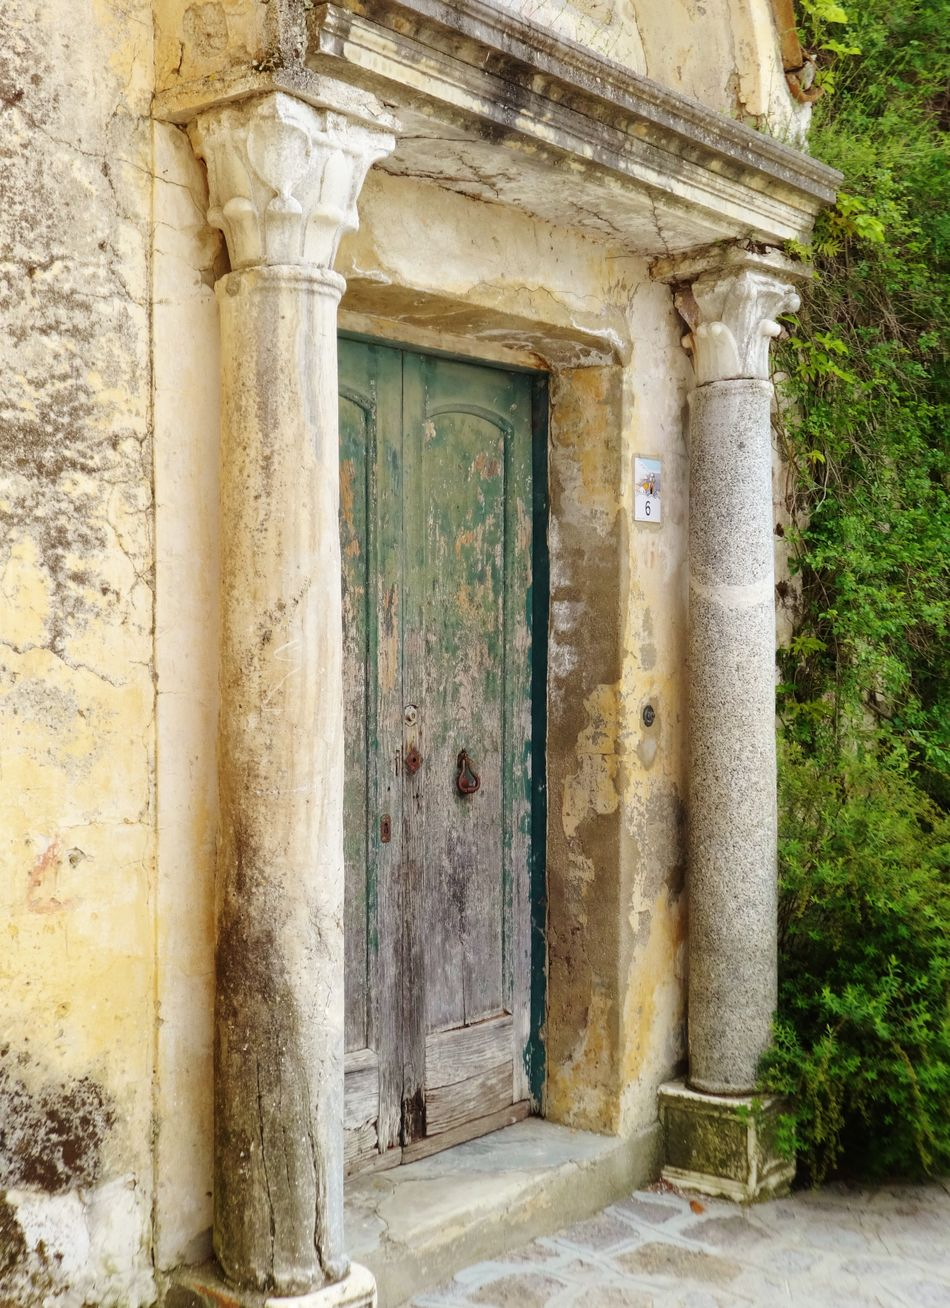 Come in do Ancient Dilapidated Entrance Foliage Green Doors No People Outdoors Pillars Stone Wall